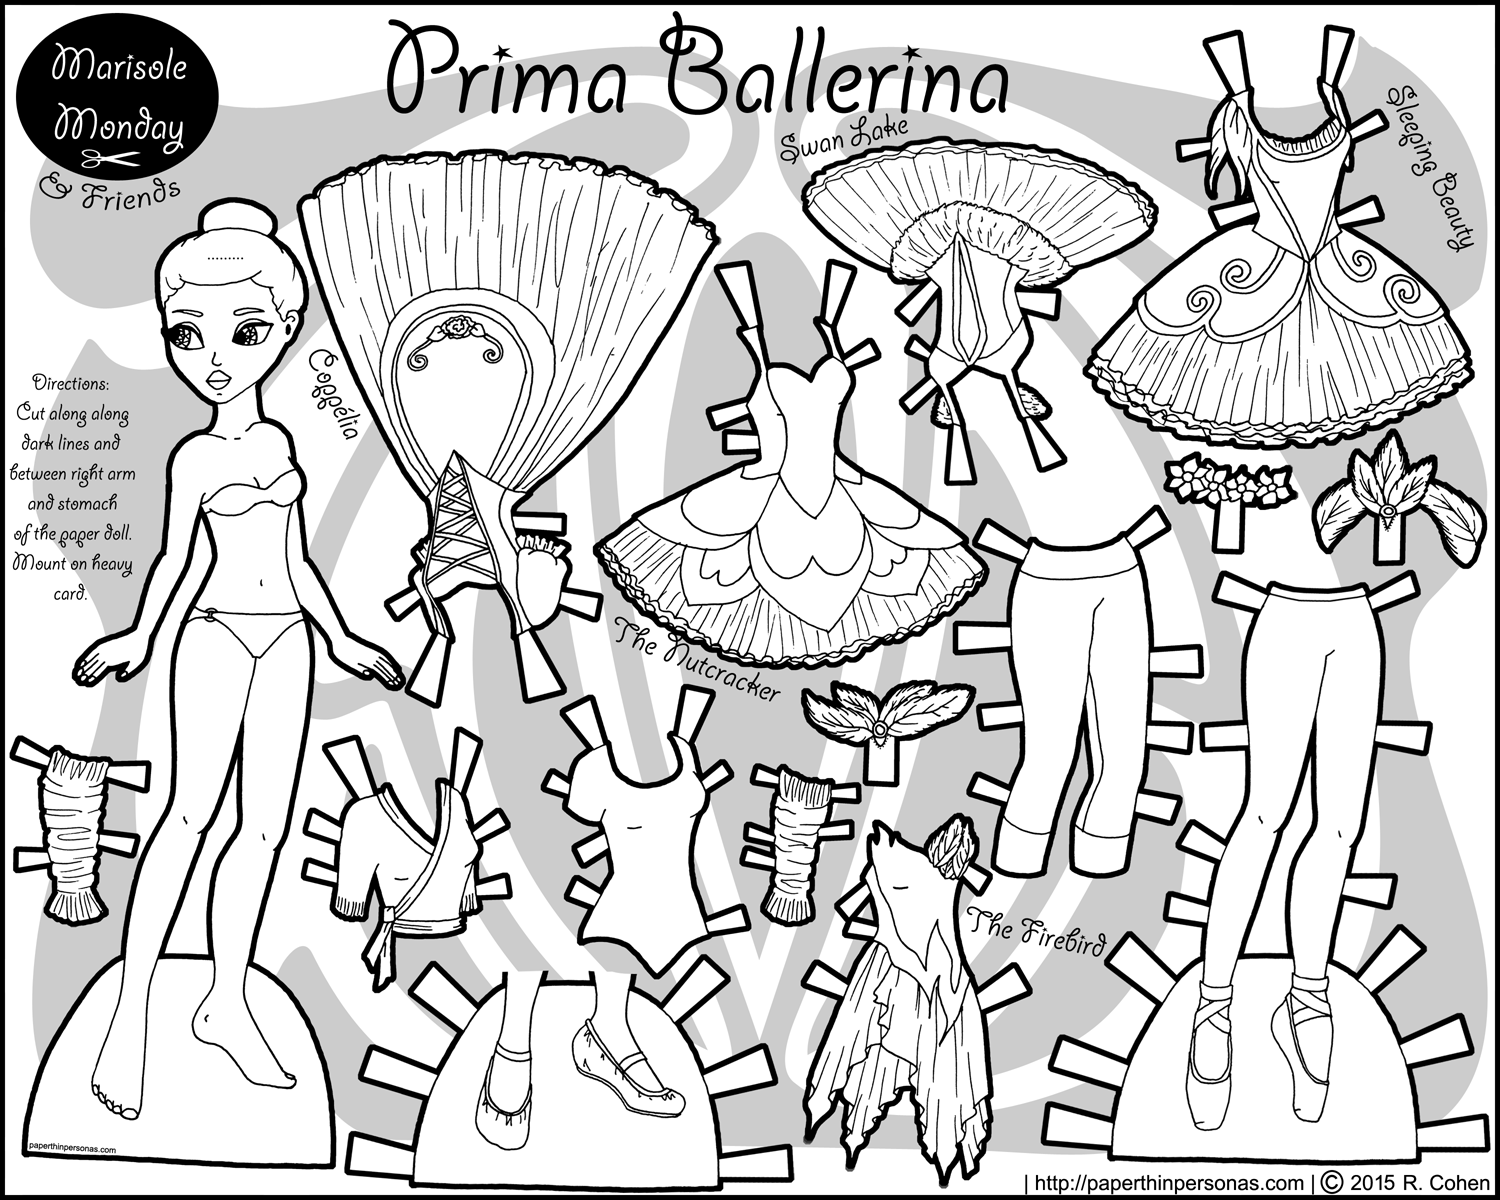 A black and white printable african-american ballerina paper doll with costumes from the ballets Coppelia, The Nutcracker, Swan Lake, Sleeping Beauty, and The Firebird.